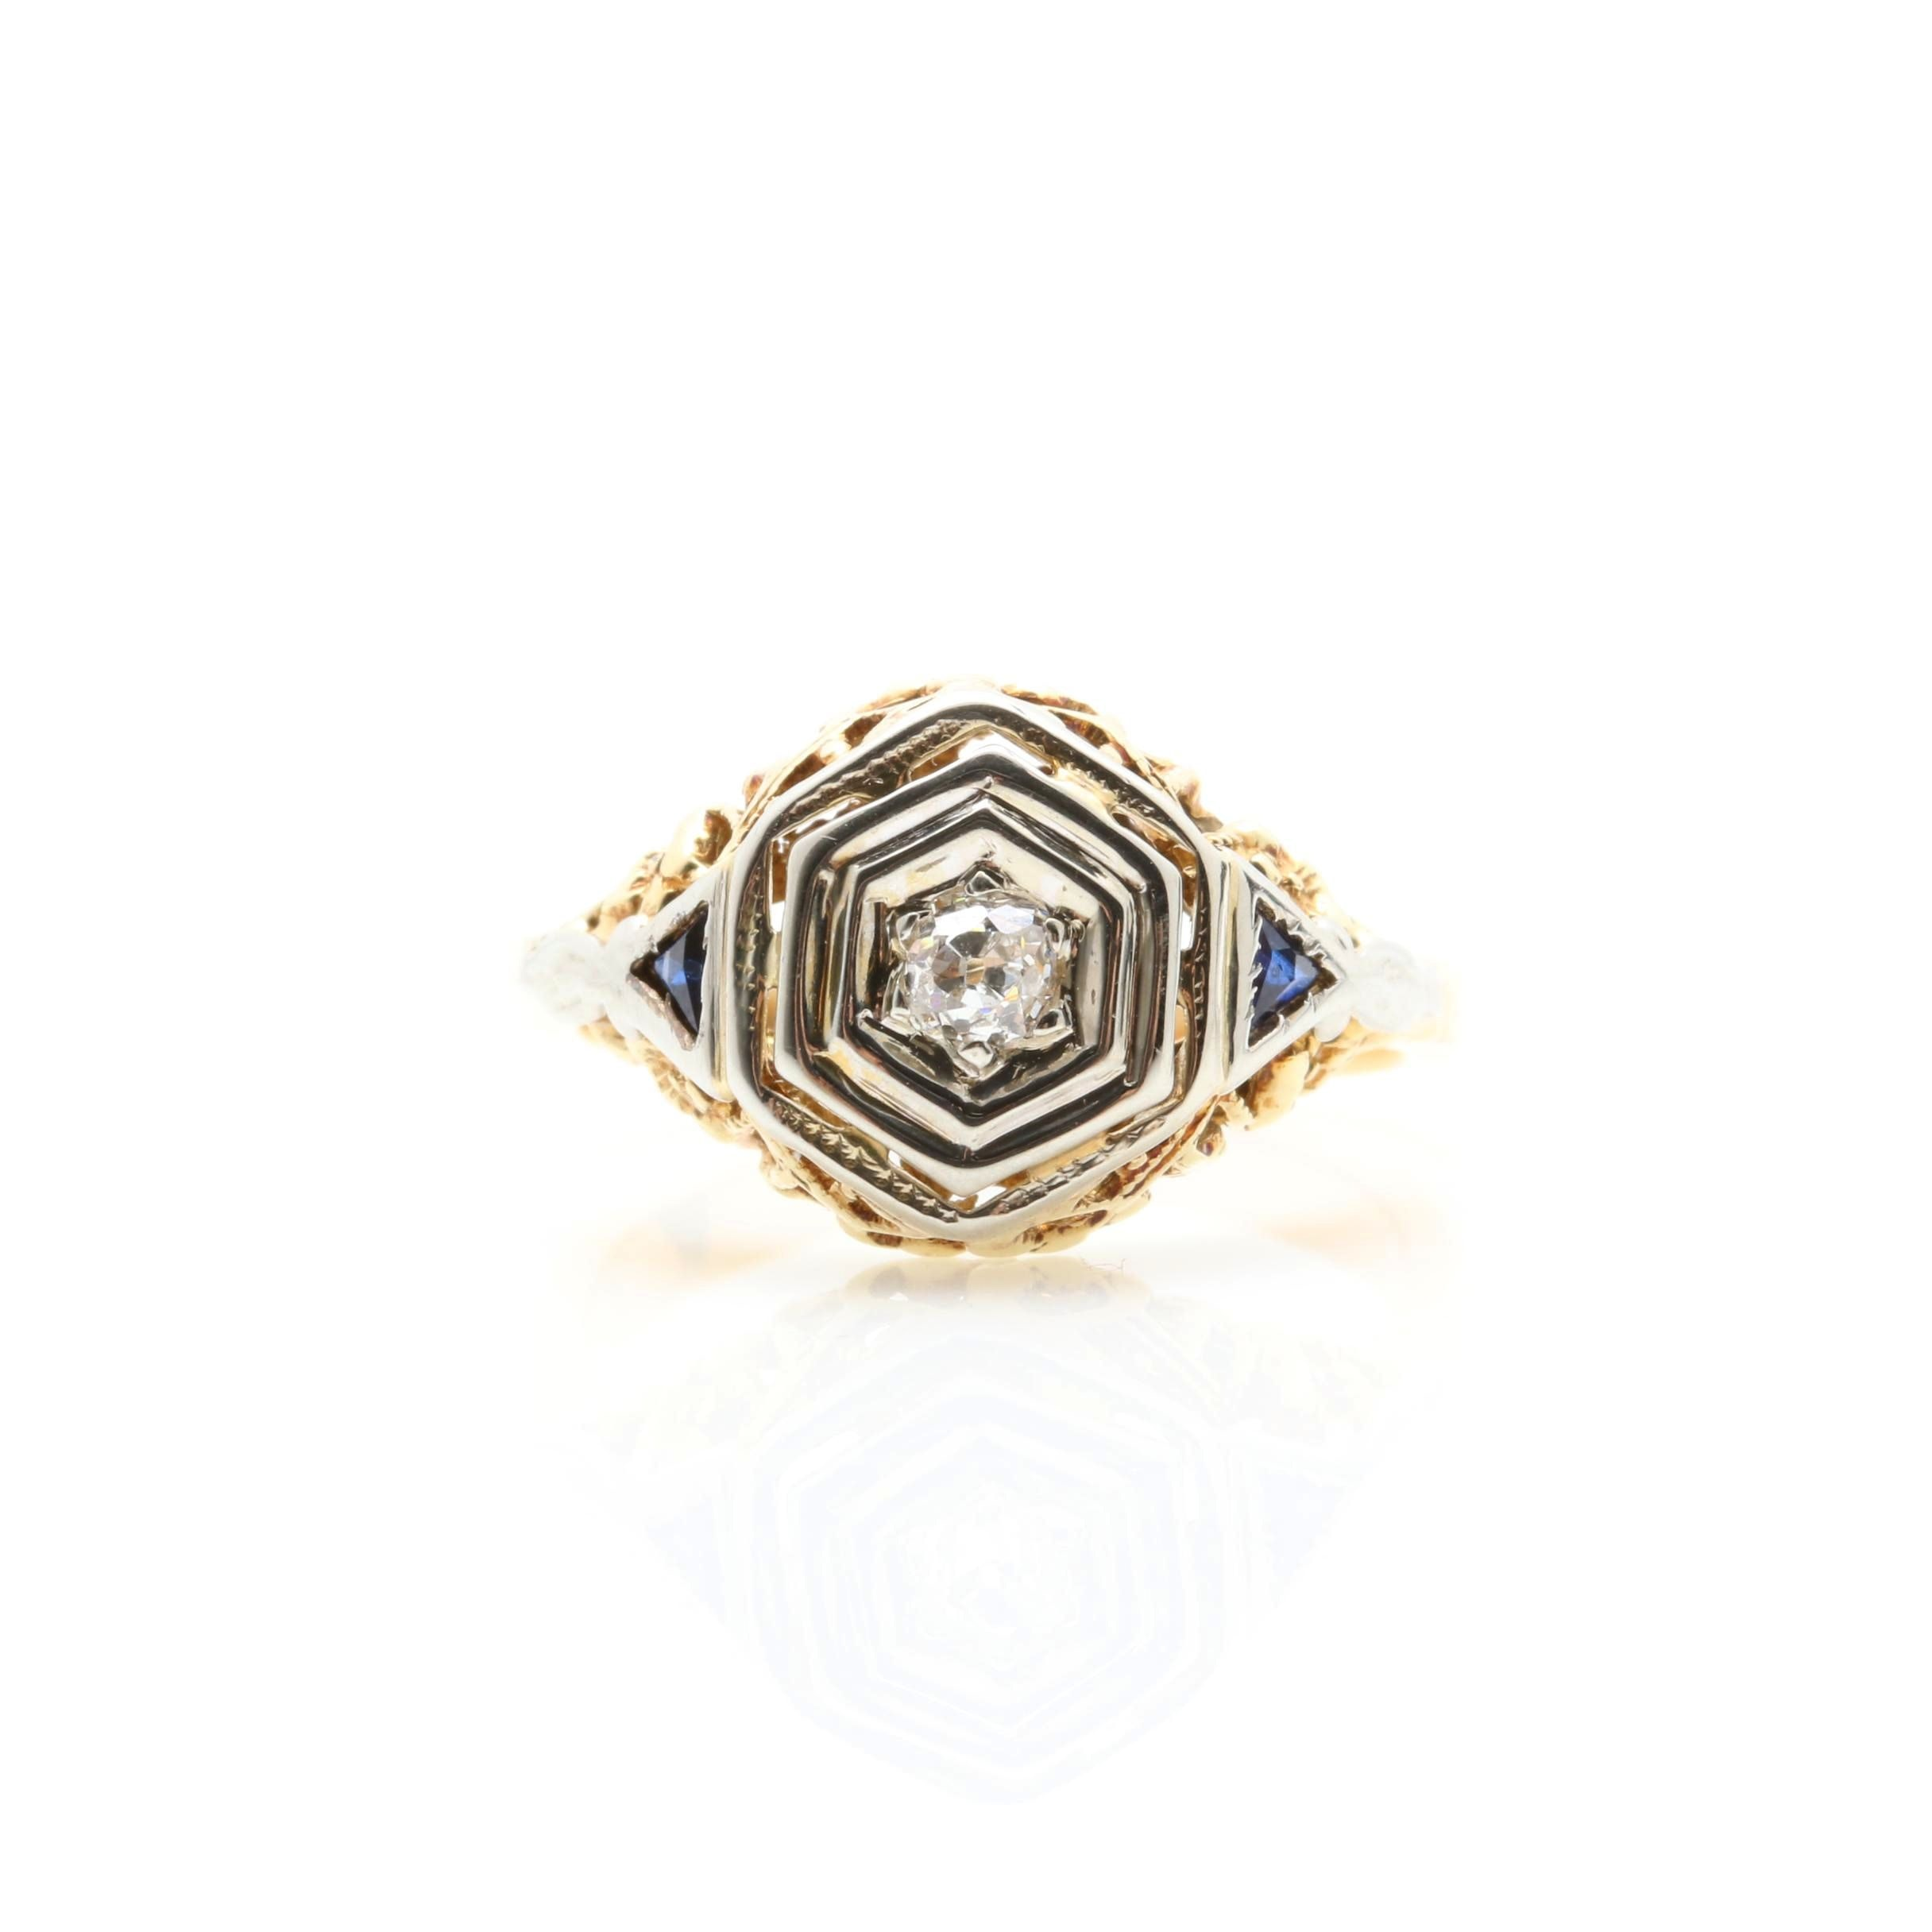 Vintage 18K Two-Tone Gold Diamond and Synthetic Blue Sapphire Ring